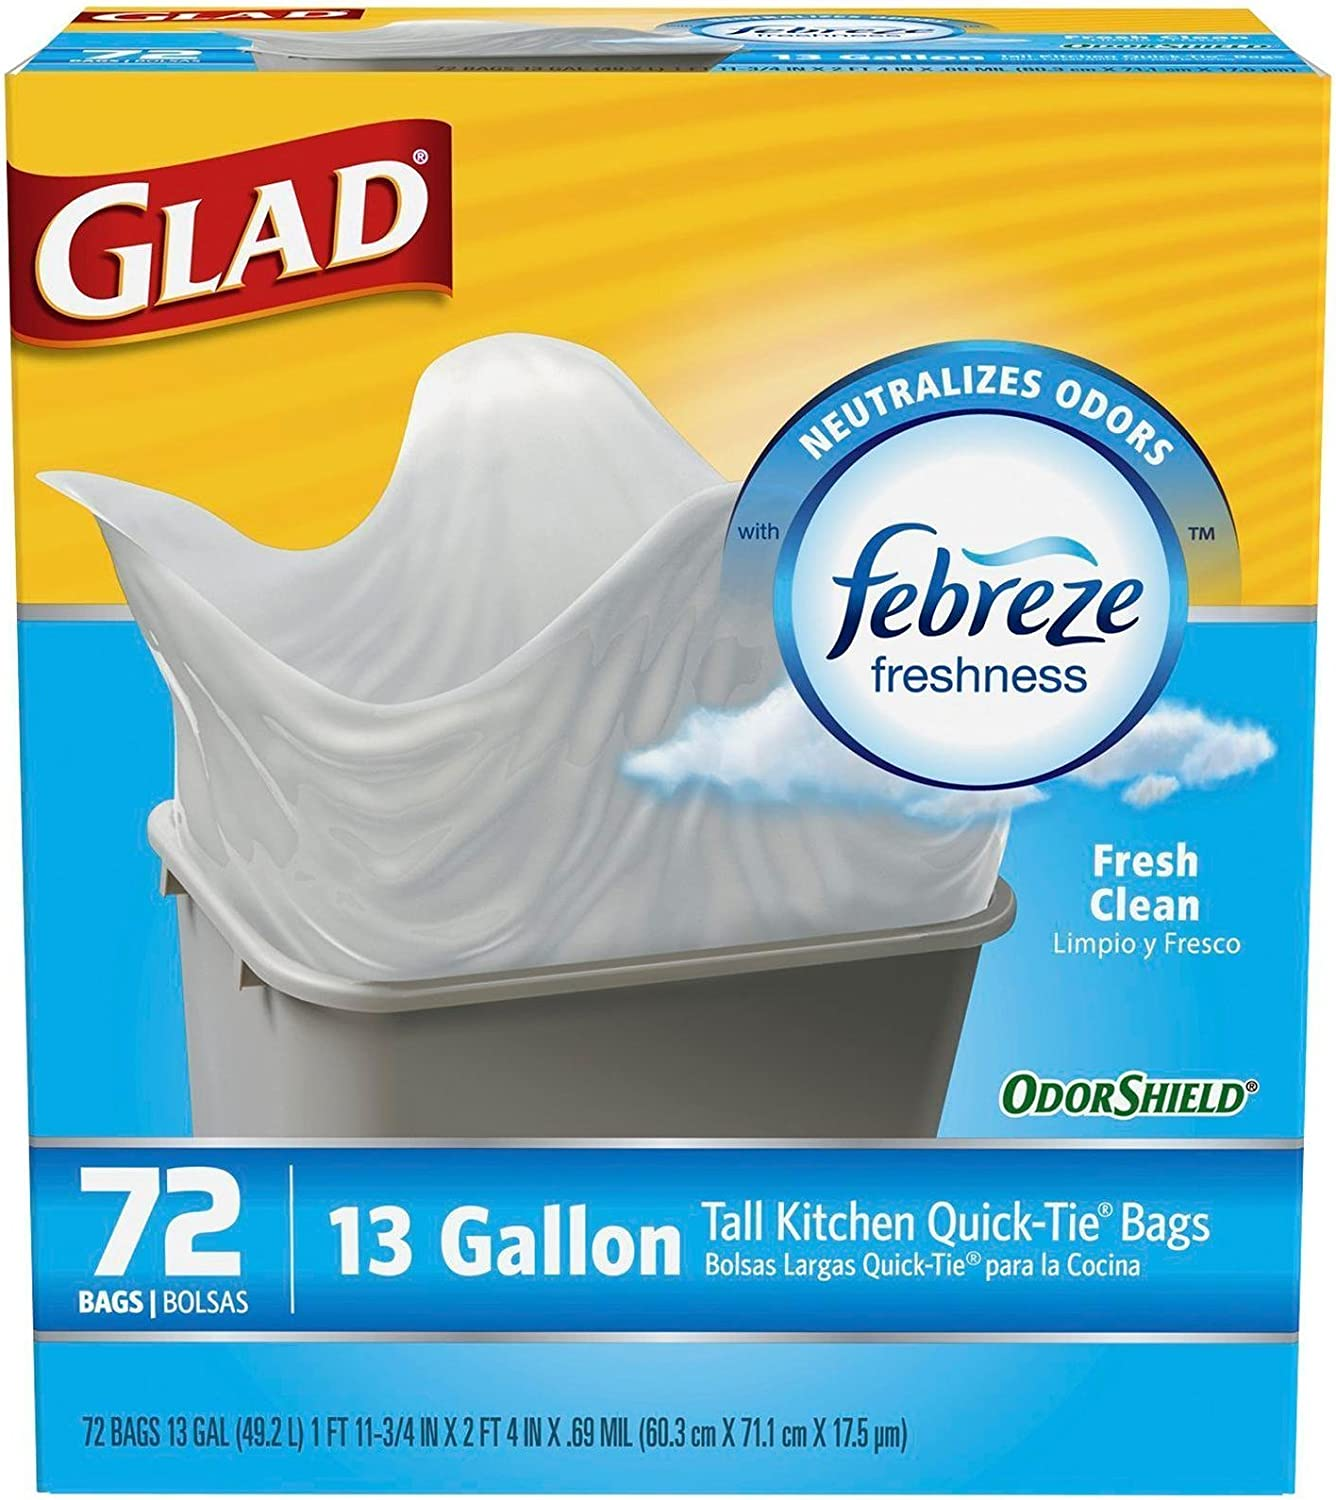 Glad Odorshield Tall Kitchen Quick-Tie Trash Bags - 13 Gallon, Fresh Clean, 72 Count